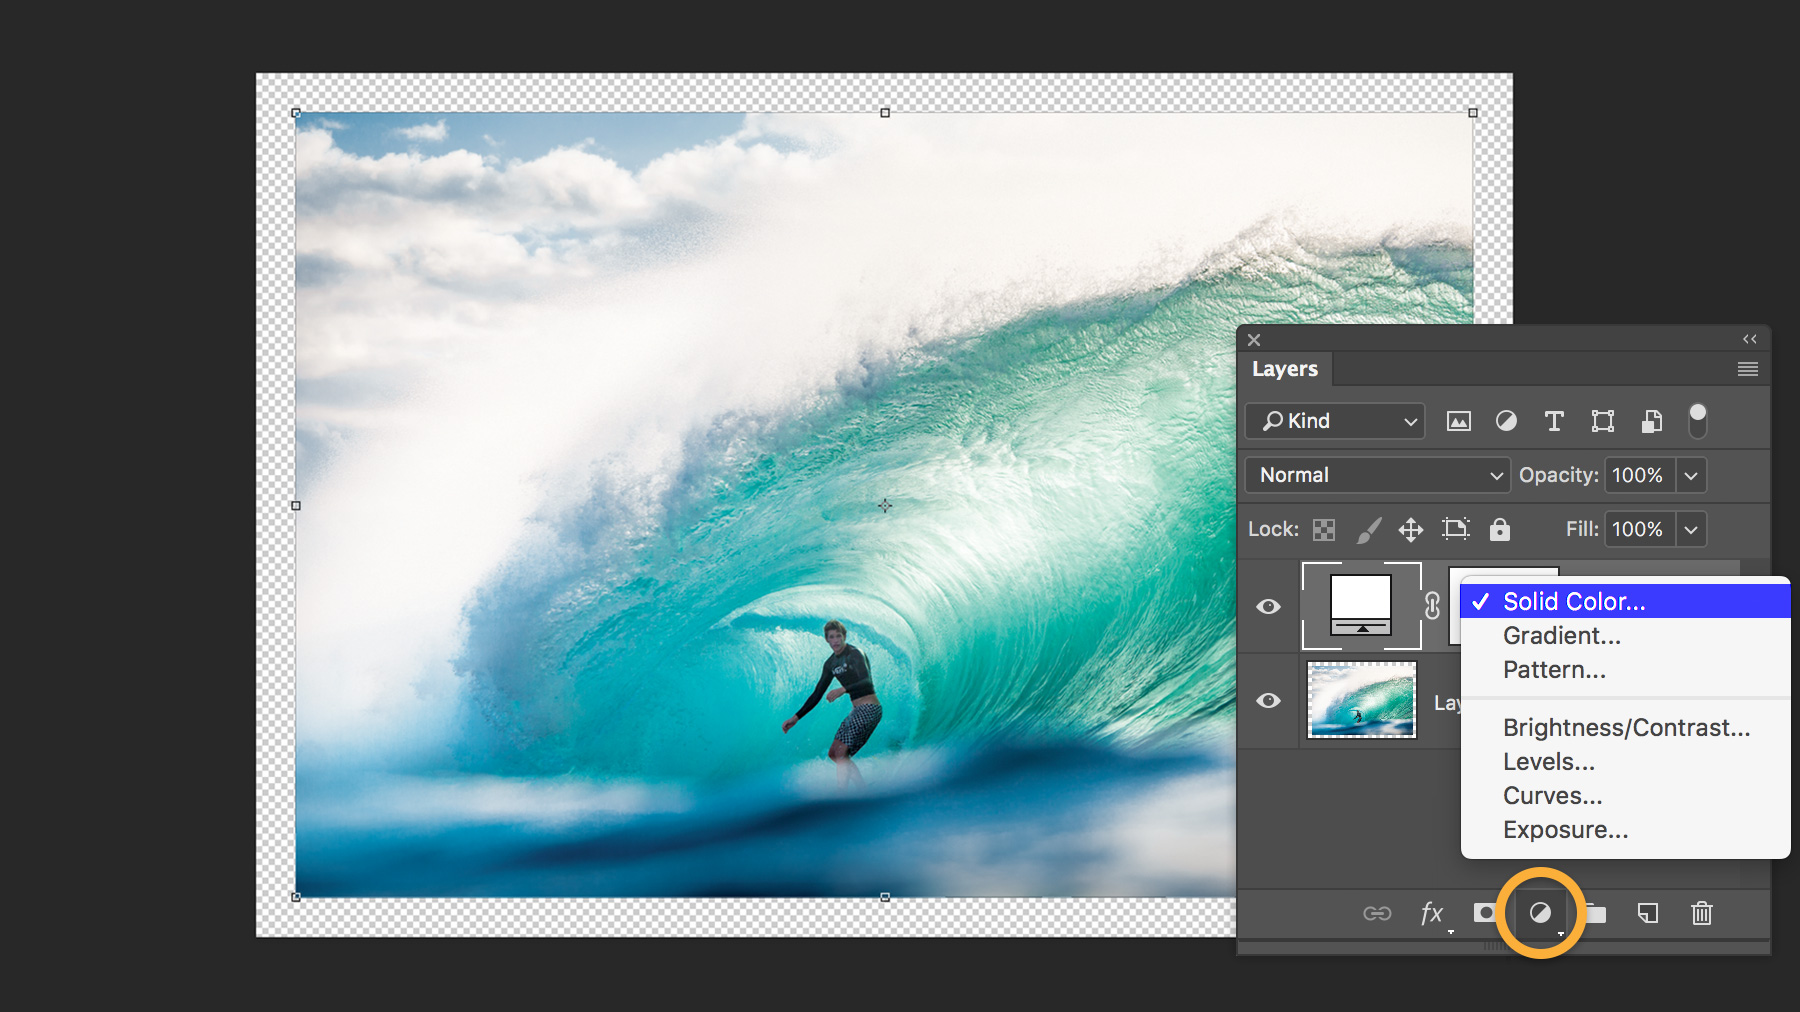 How to add a border or frame around a photo in Photoshop